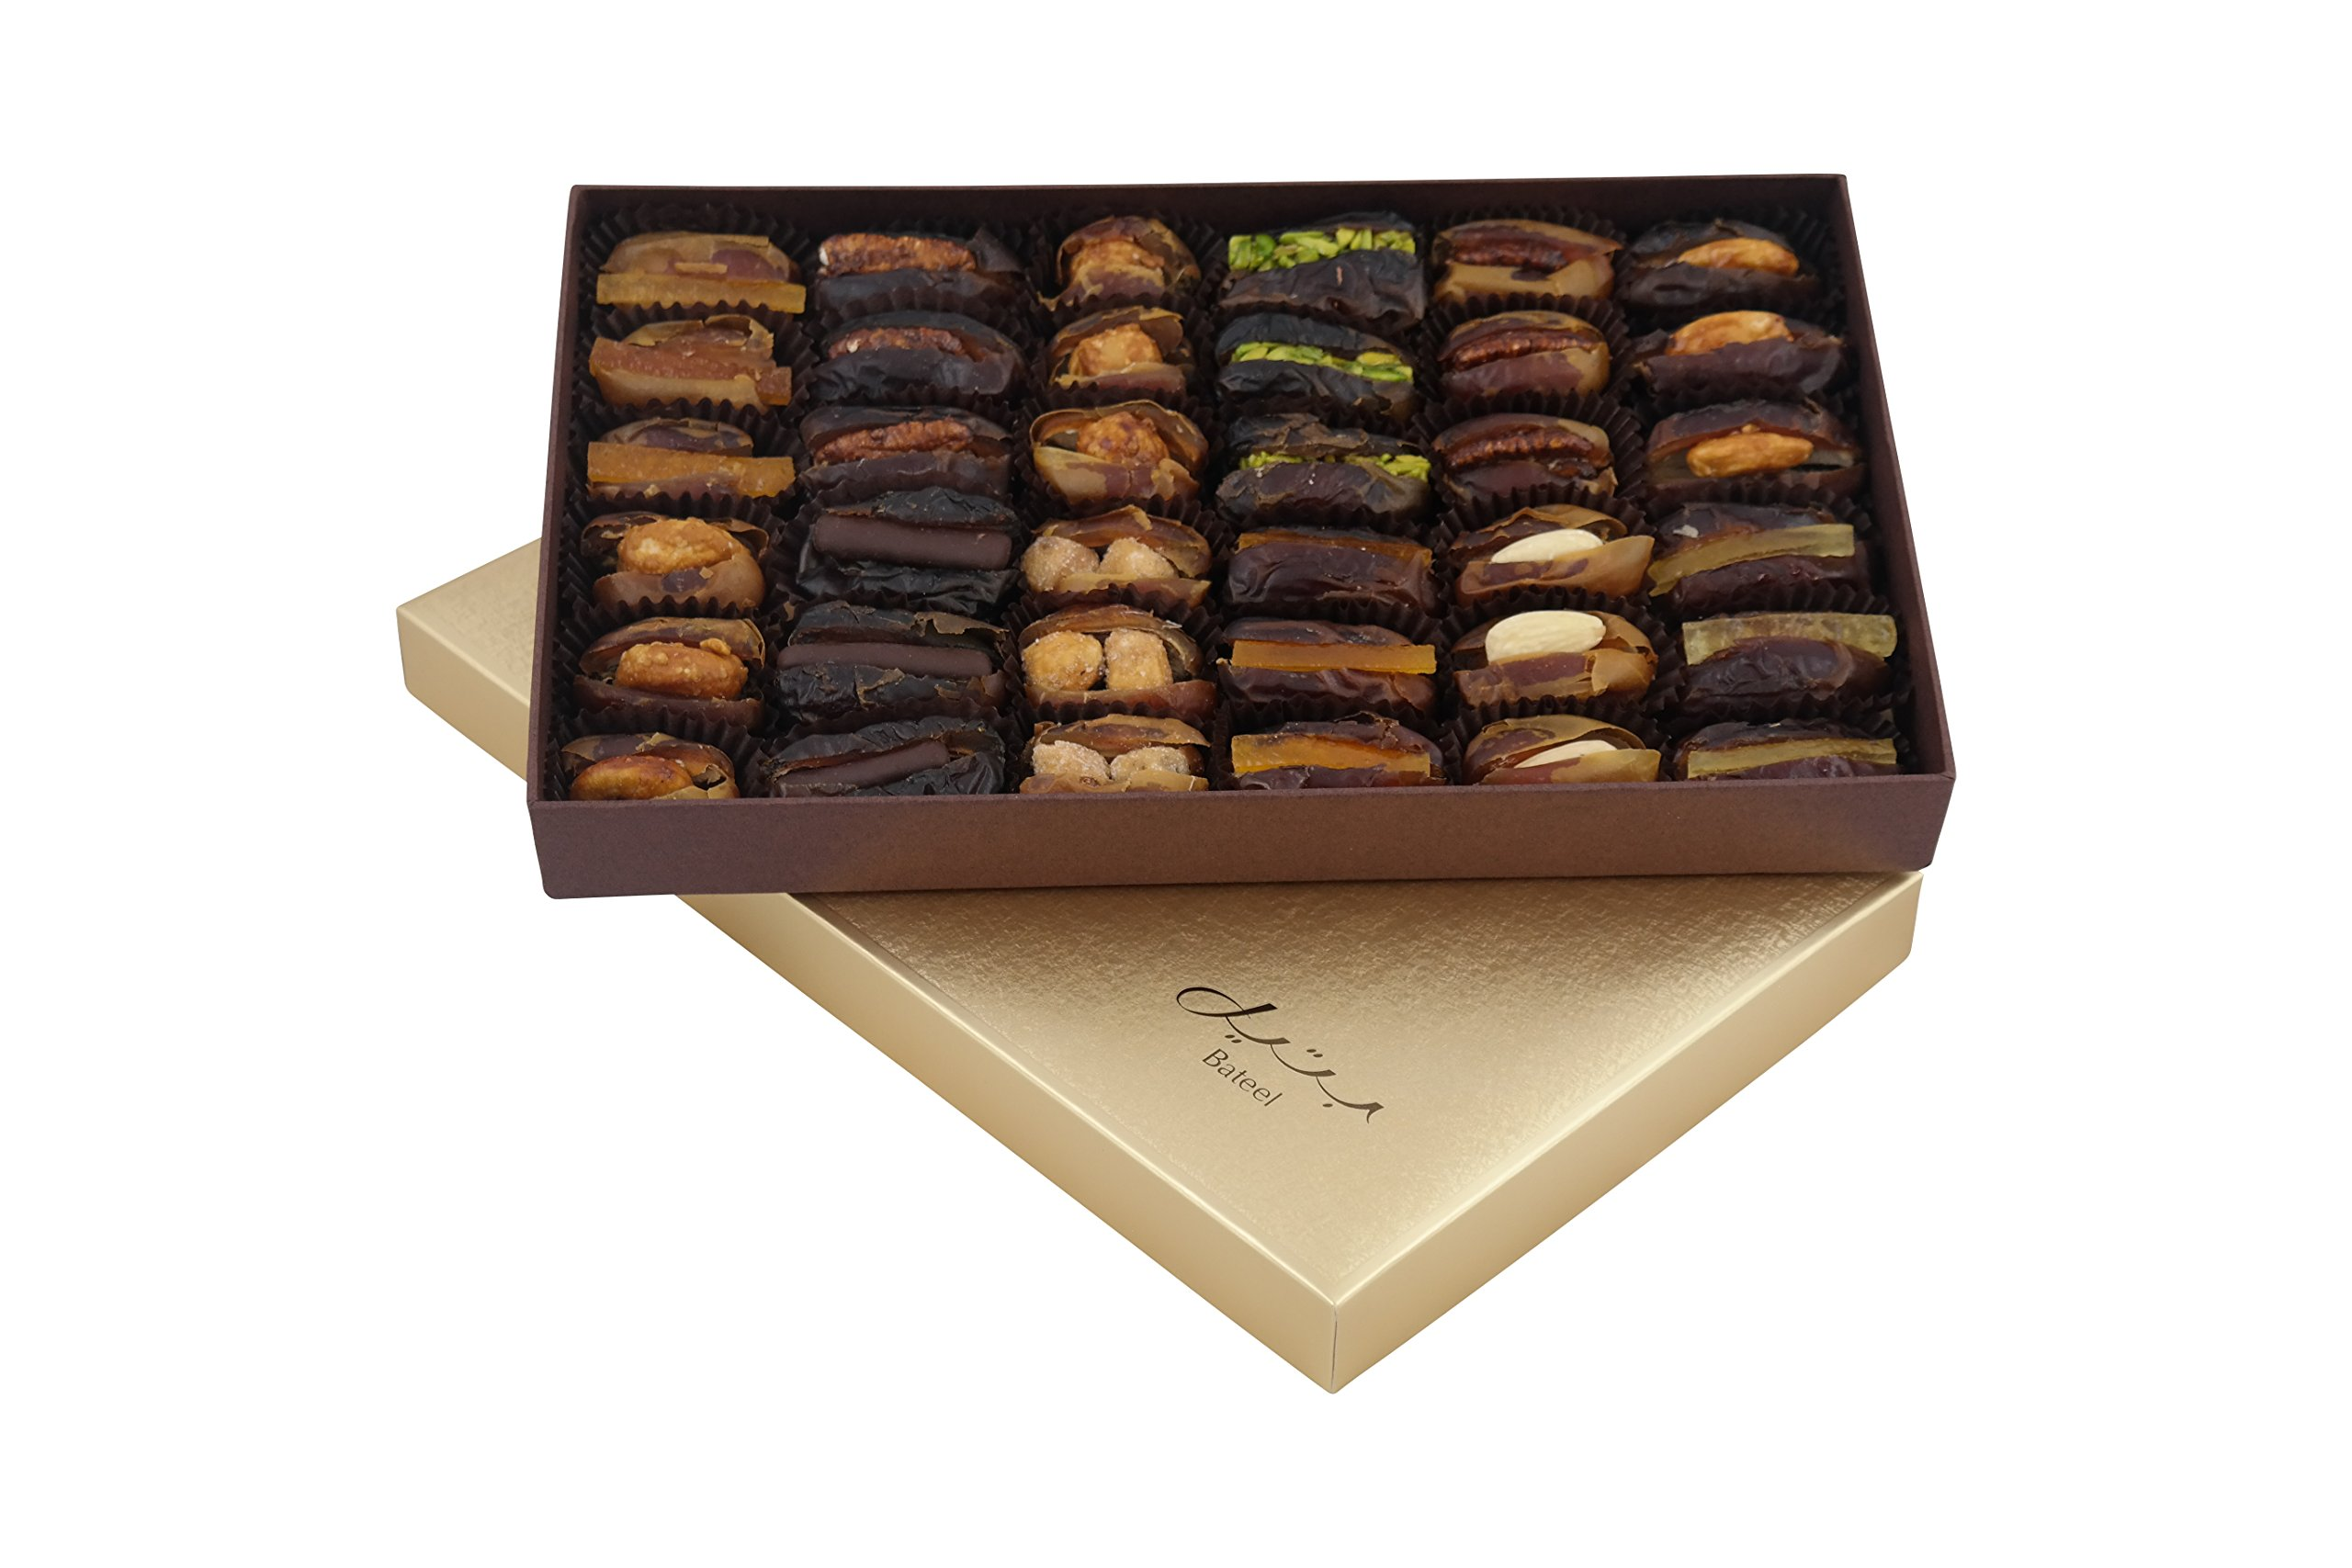 Cassandra Rectangle Gift Box with Gourmet Filled Dates (36 Pieces)